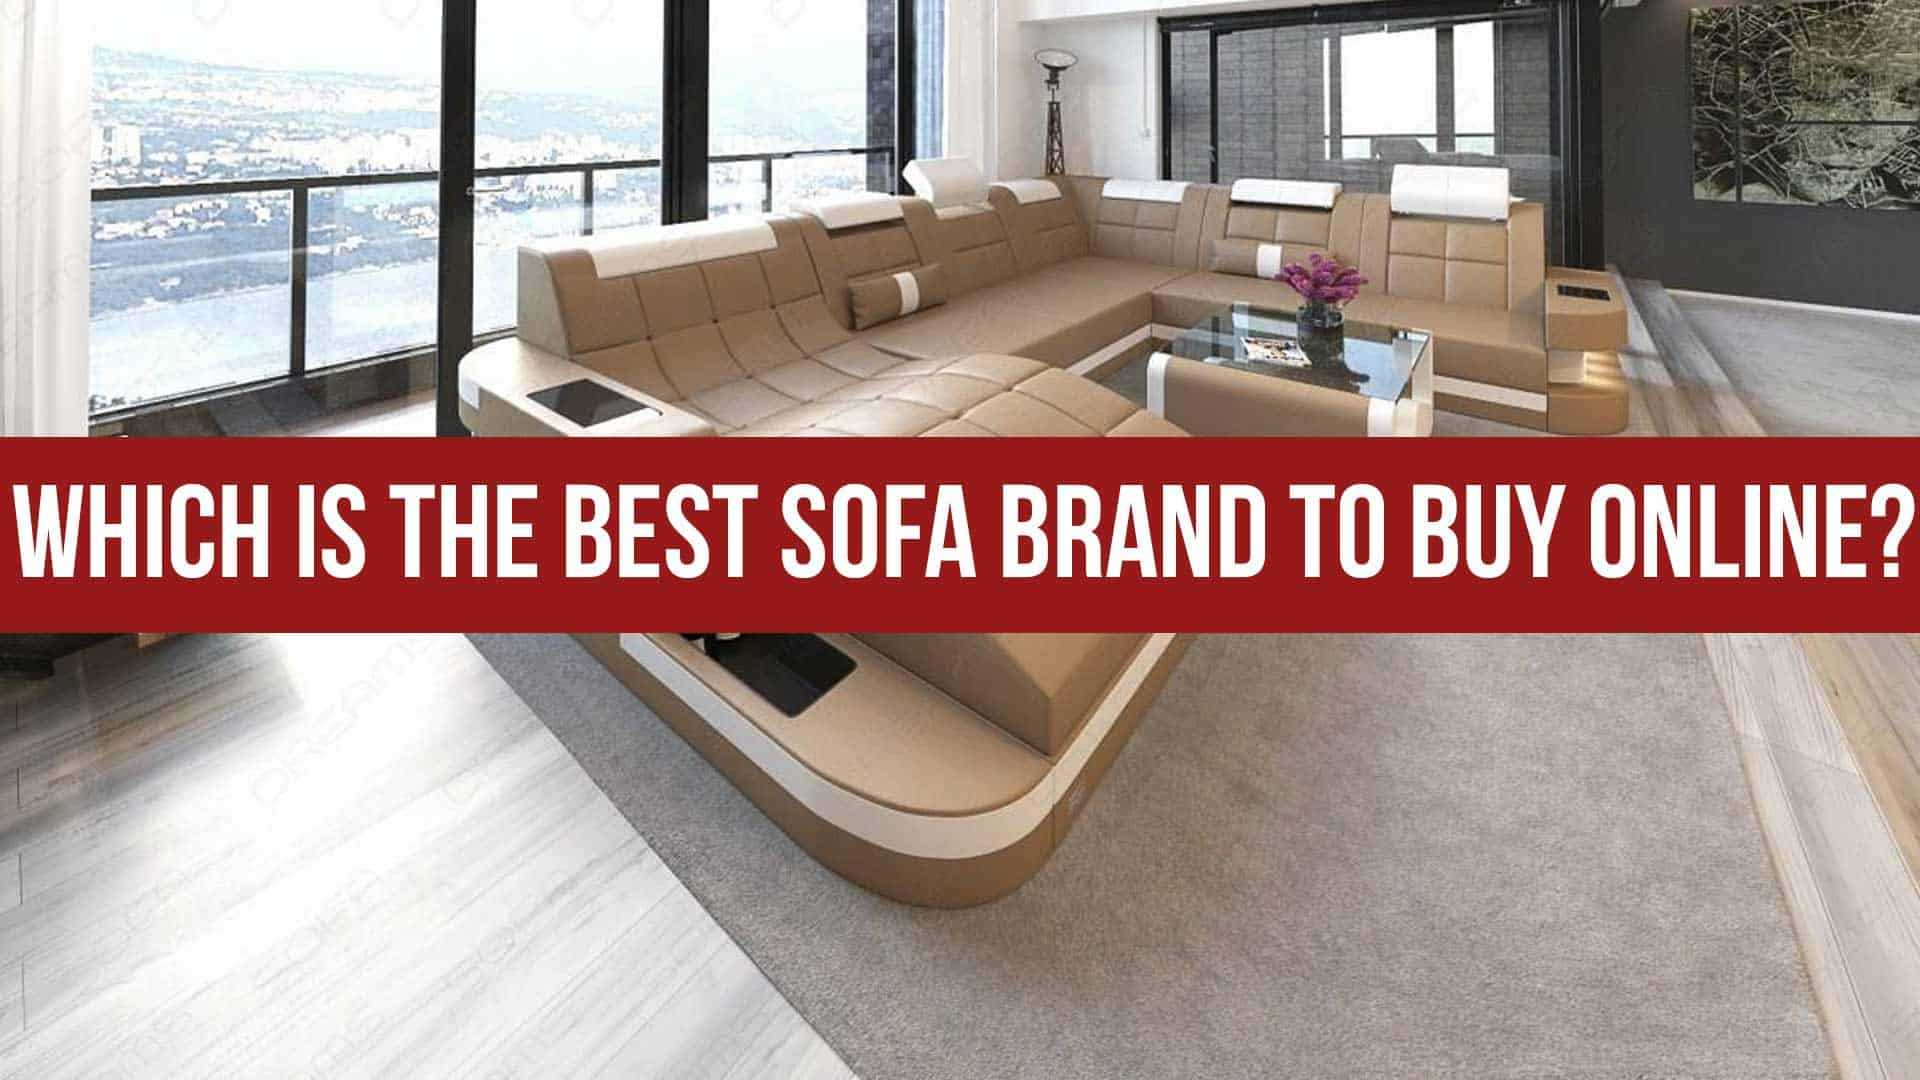 Which is the best sofa brand to buy online?